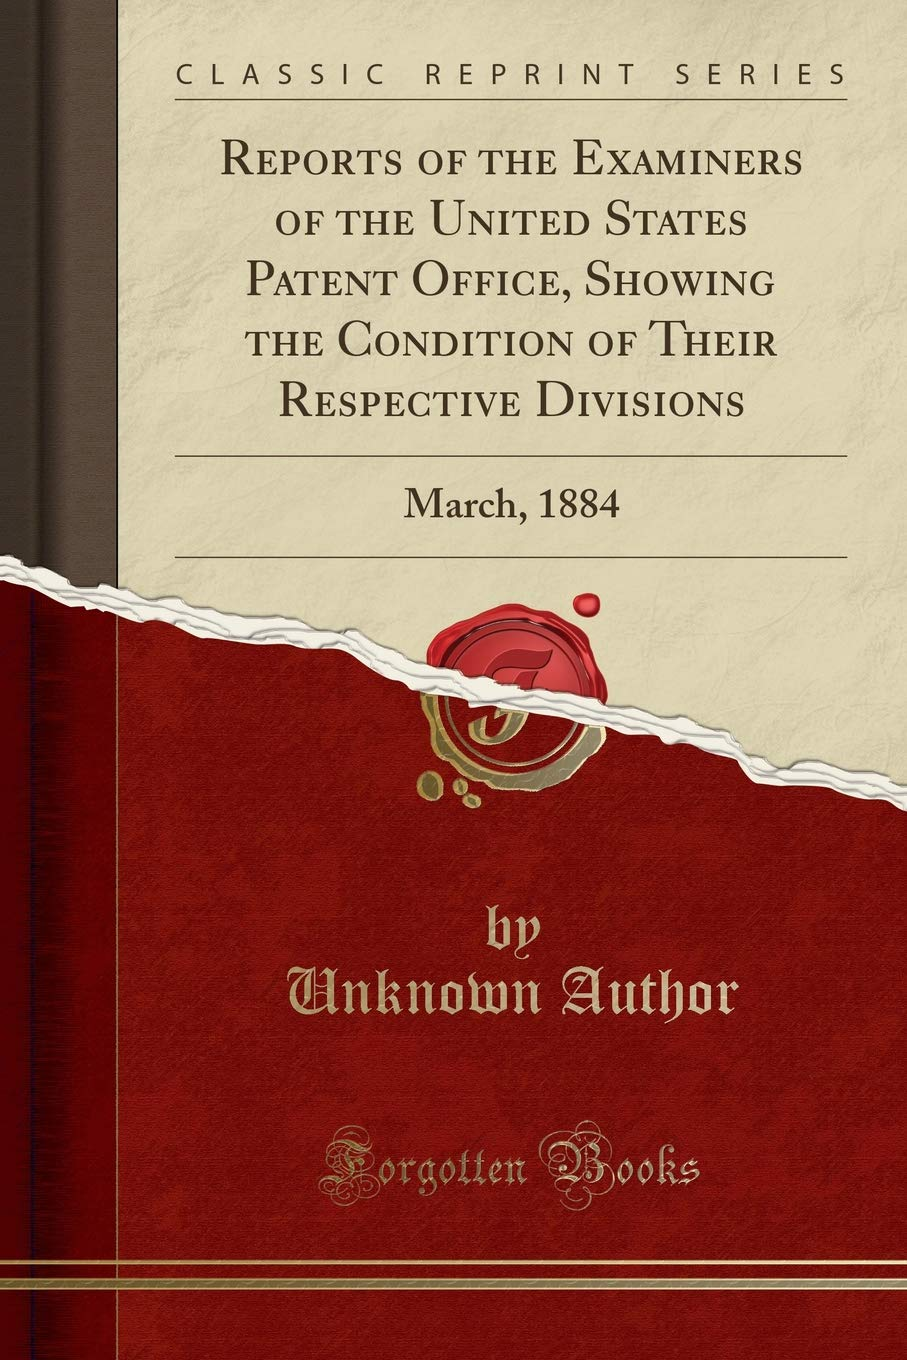 Download Reports of the Examiners of the United States Patent Office, Showing the Condition of Their Respective Divisions: March, 1884 (Classic Reprint) PDF